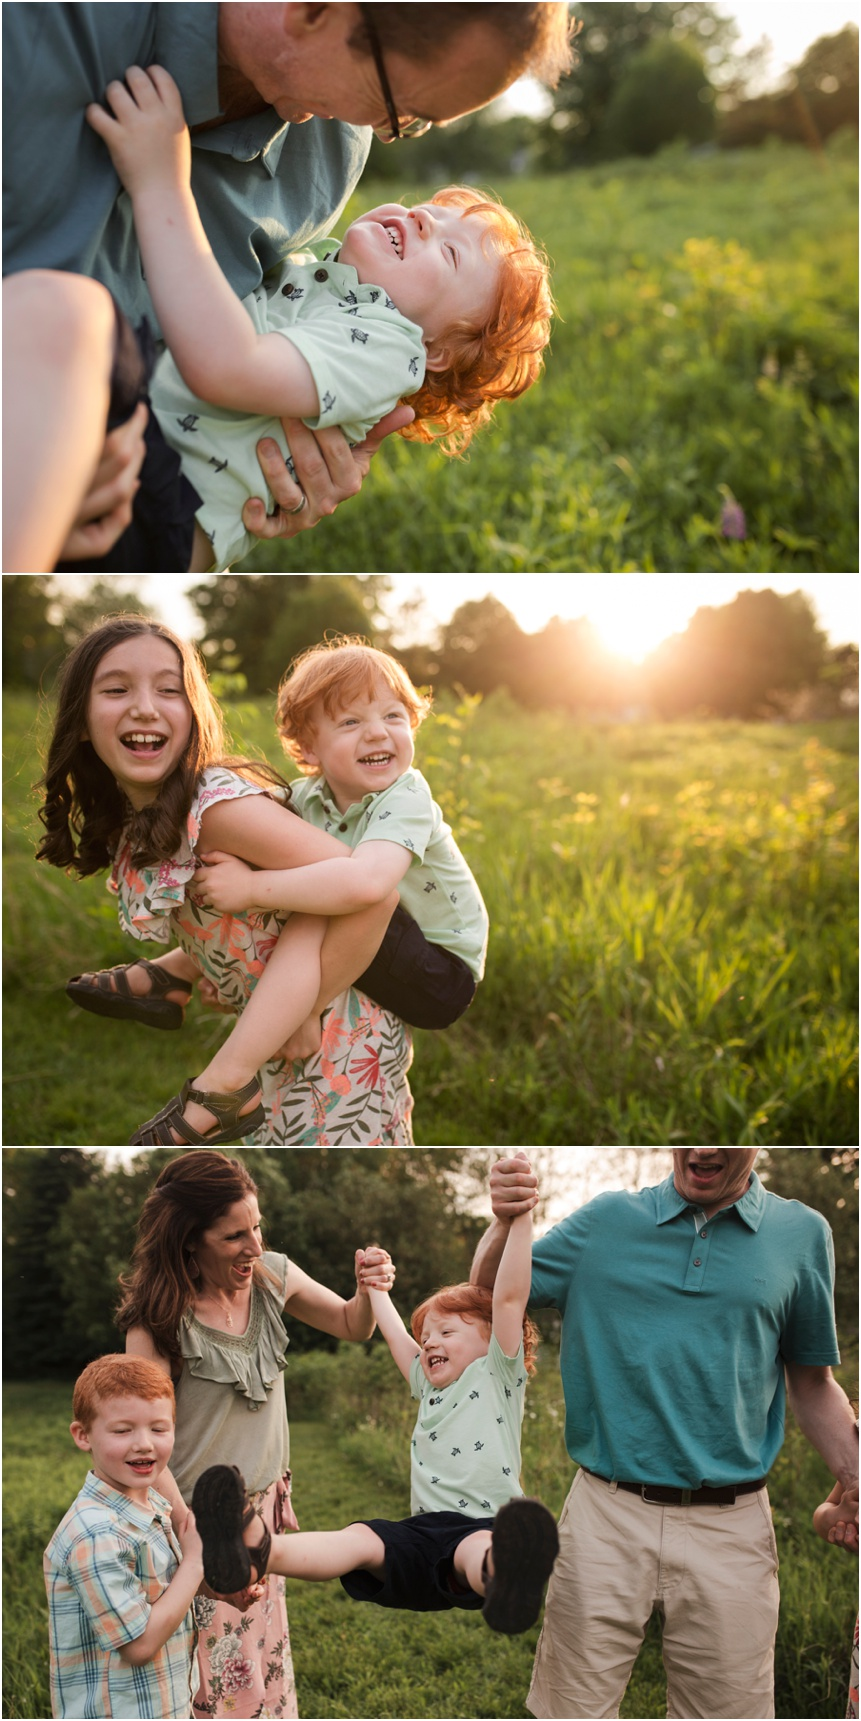 Oneonta family pohotographer, family spending time together